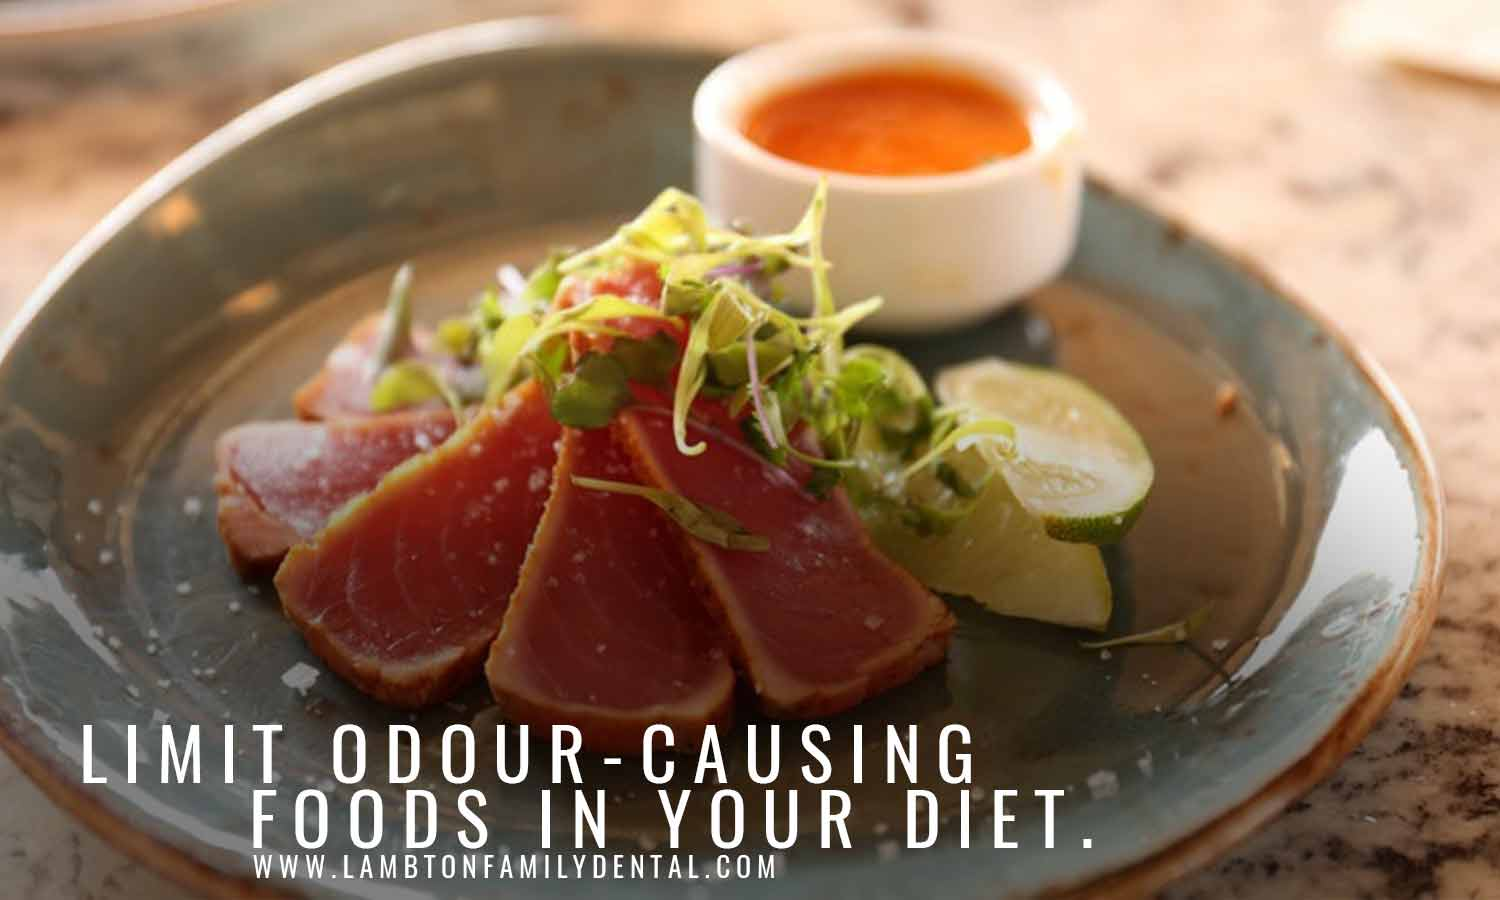 Limit odour-causing foods in your diet